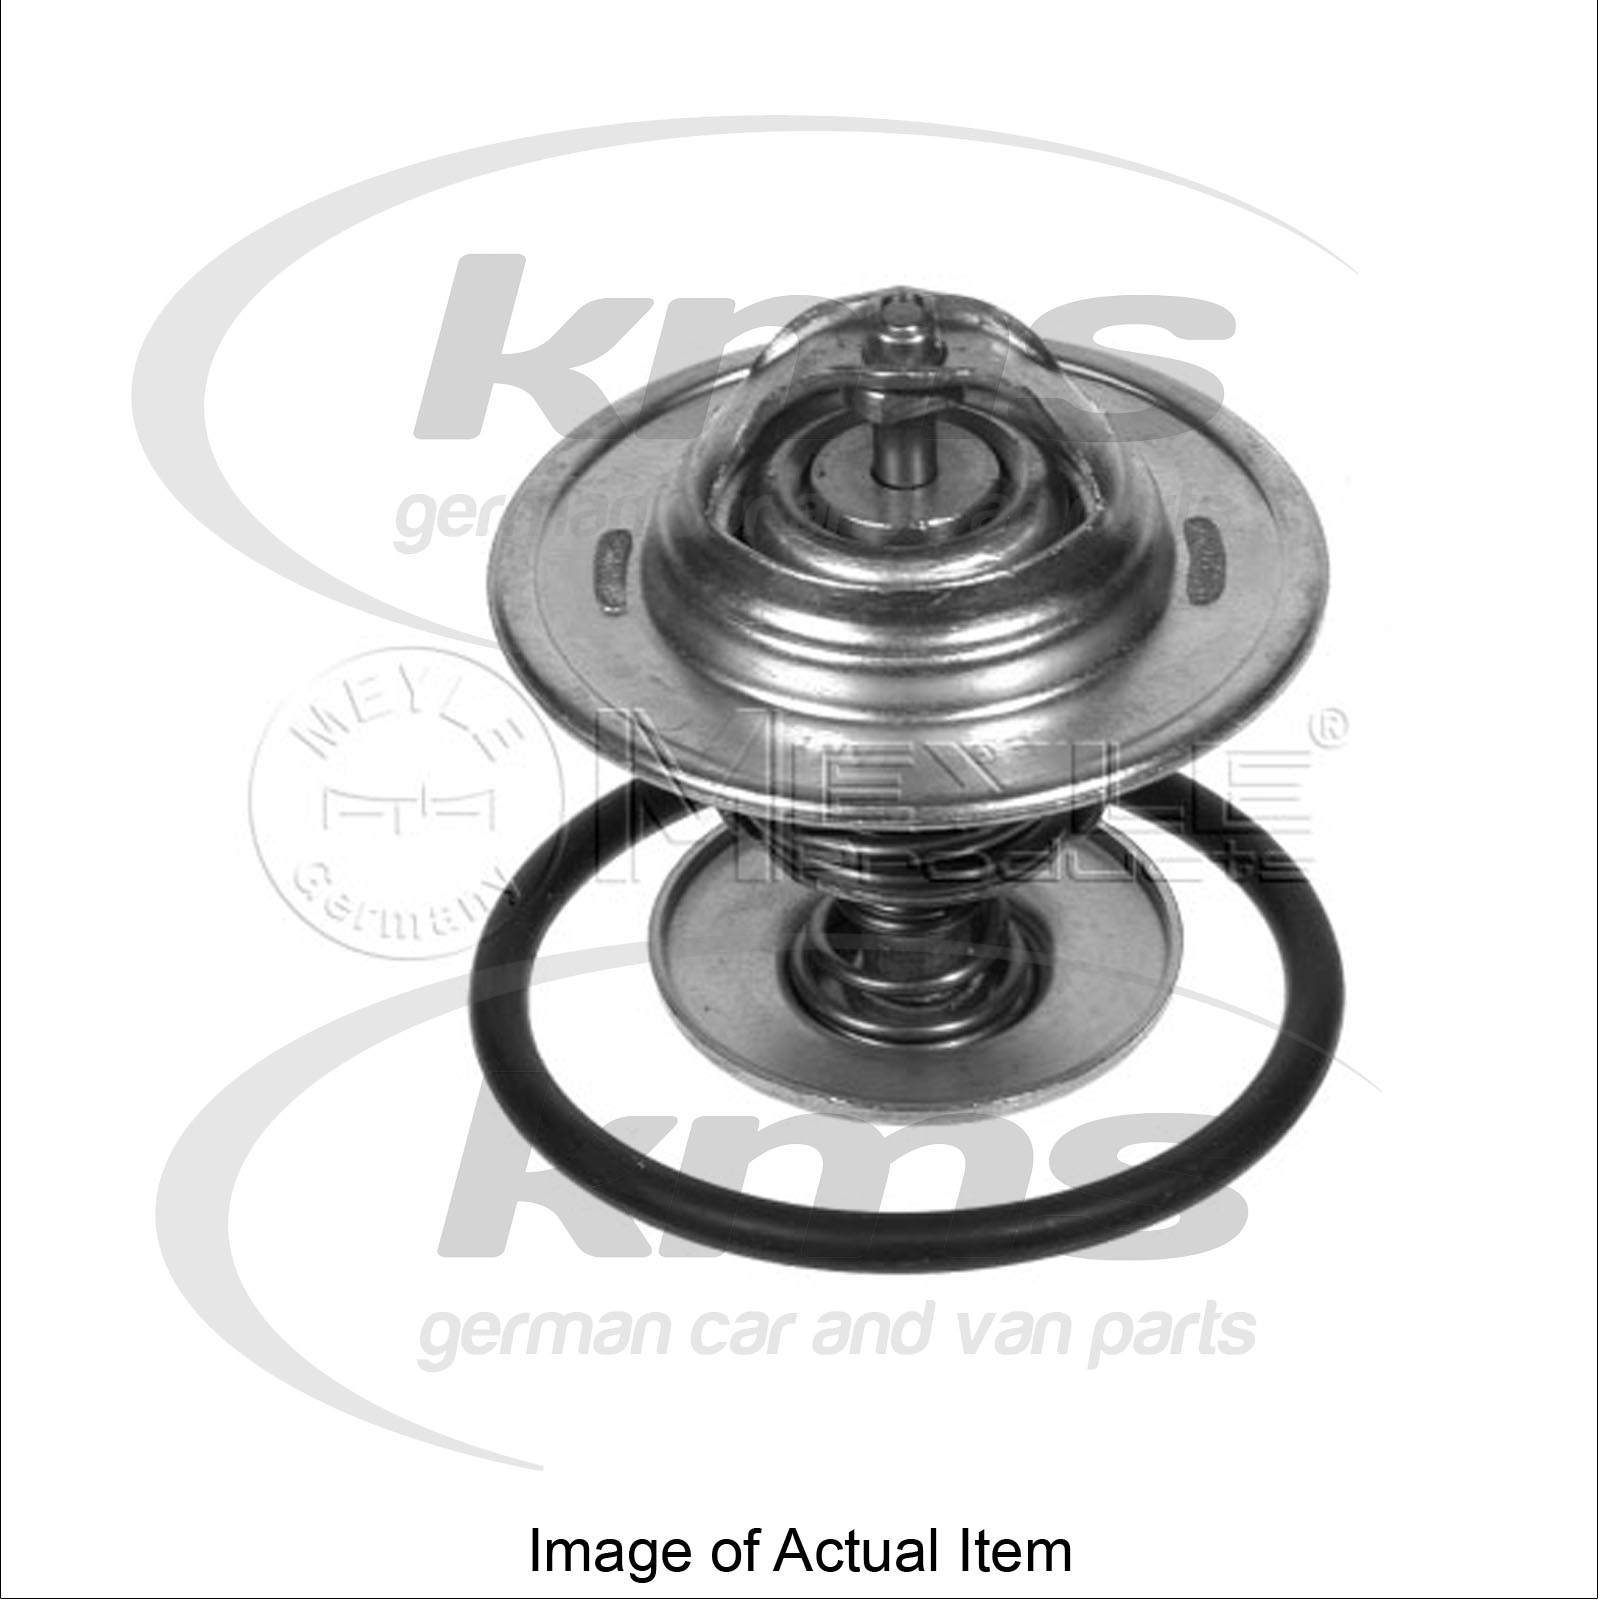 thermostat for coolant vw golf mk3 1h1 1 4 55bhp top german quality ebay. Black Bedroom Furniture Sets. Home Design Ideas